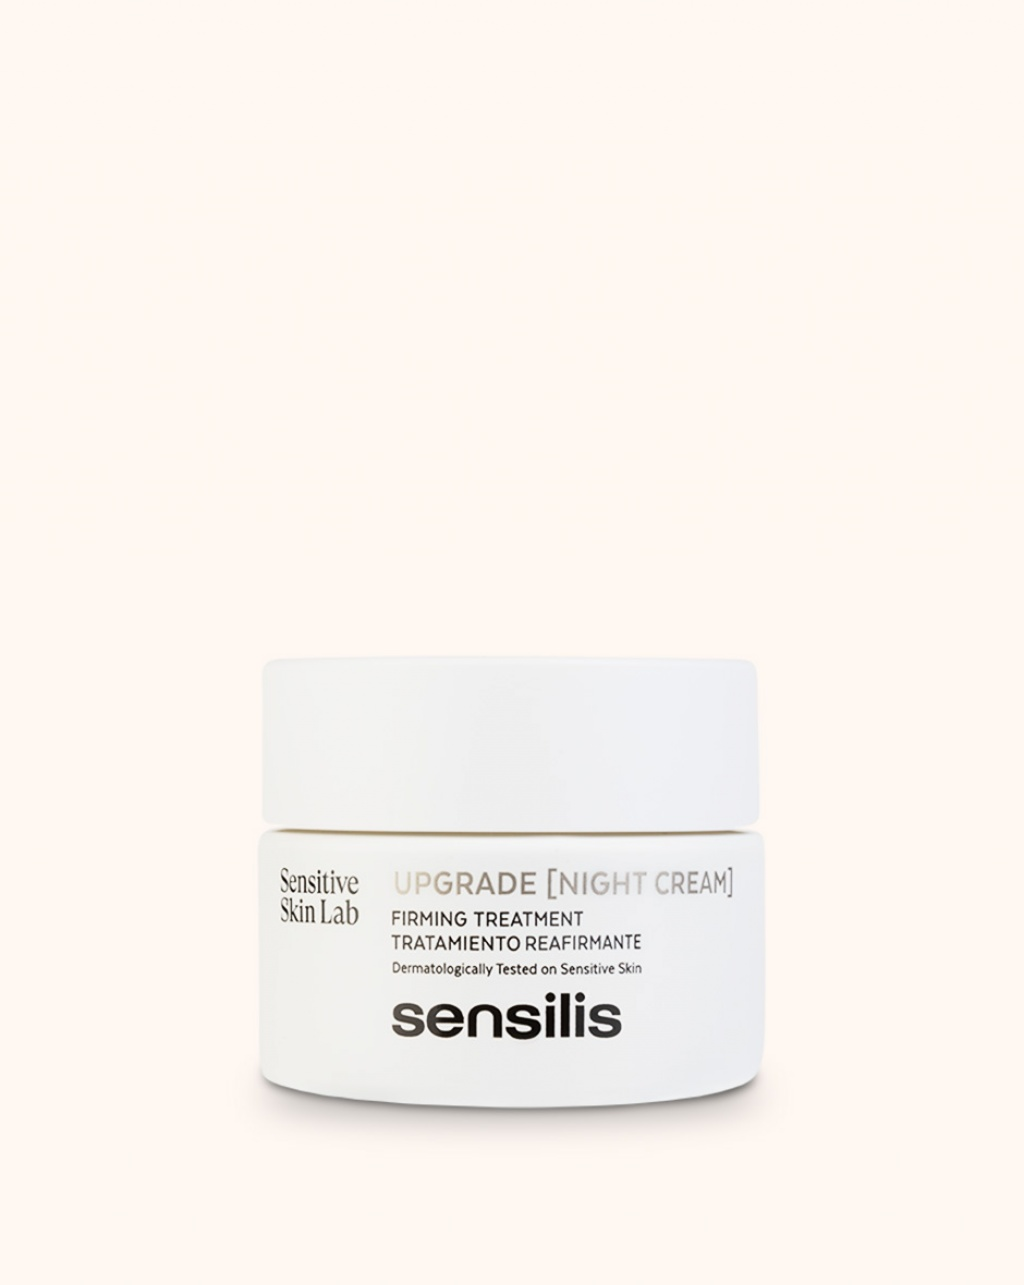 Sensilis Upgrade Chrono Lift night cream 50 ml